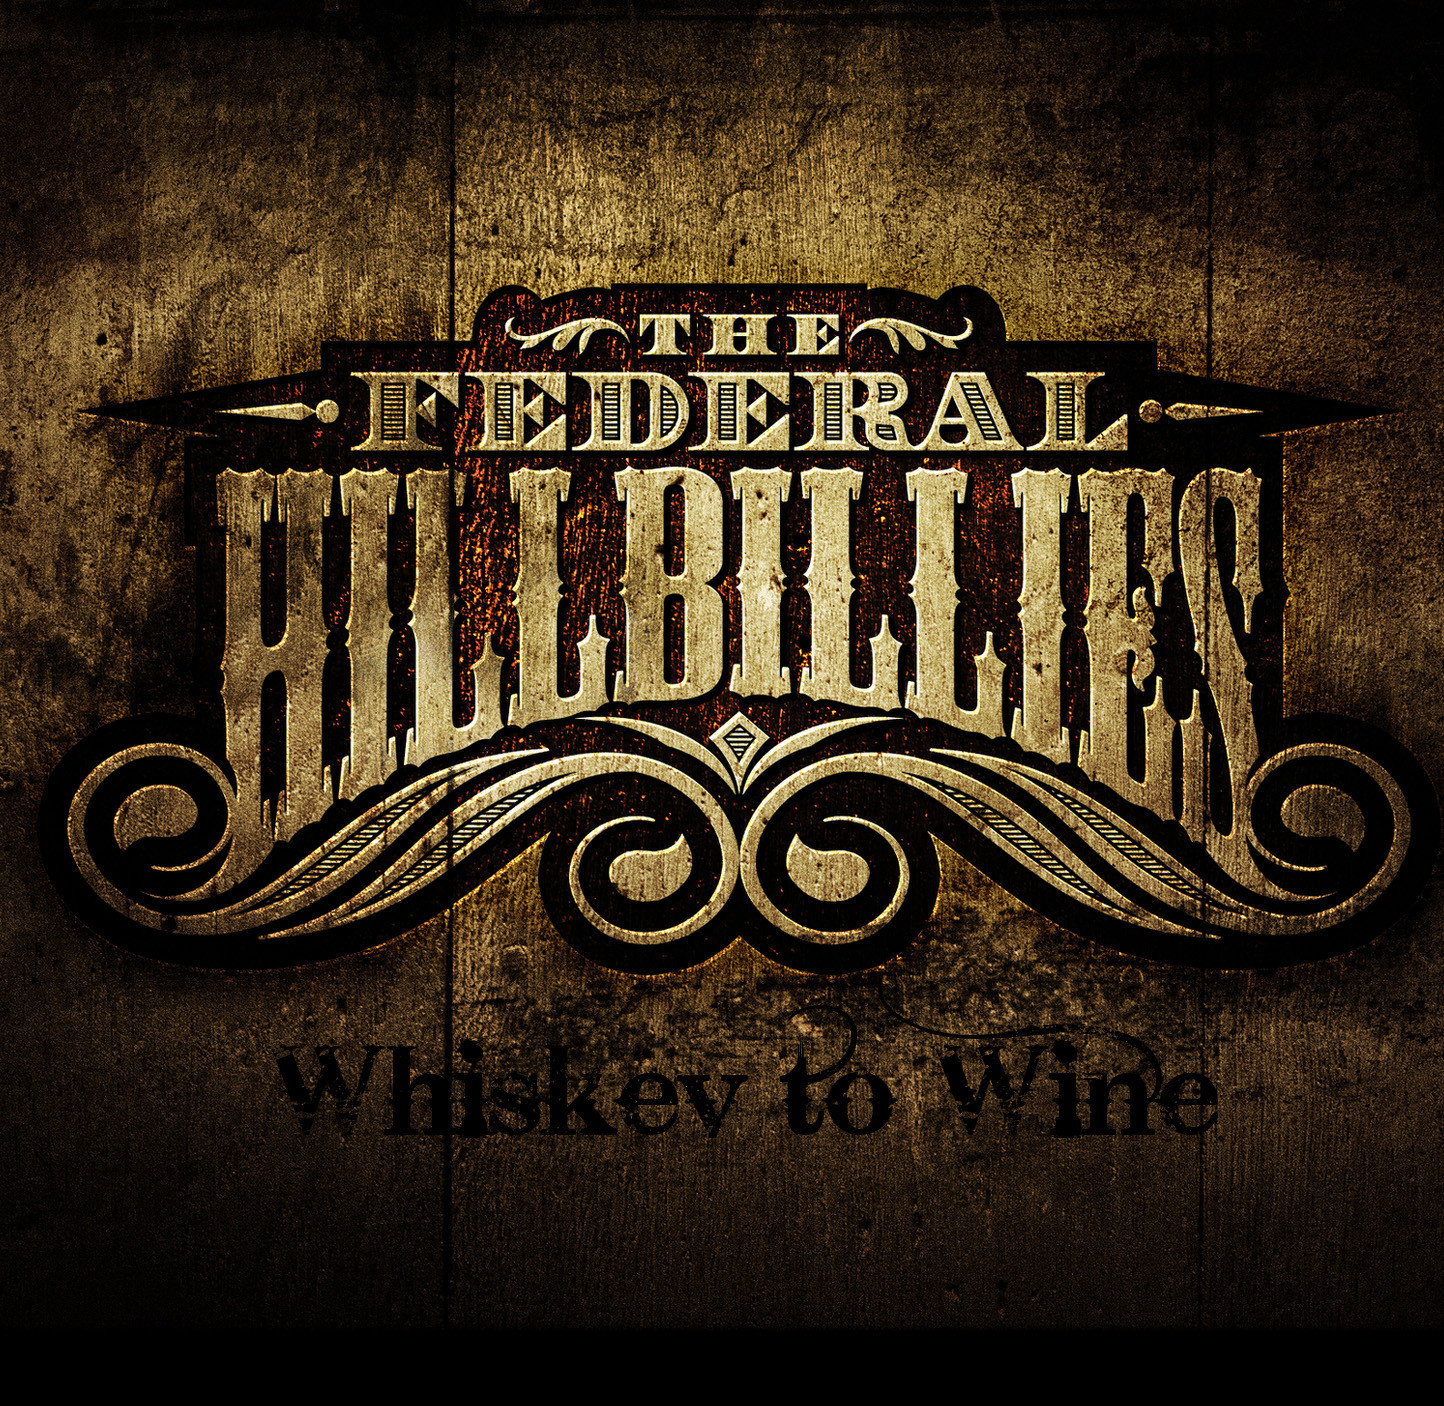 Baltimore album reviews [Pictures] - The Federal Hillbillies,